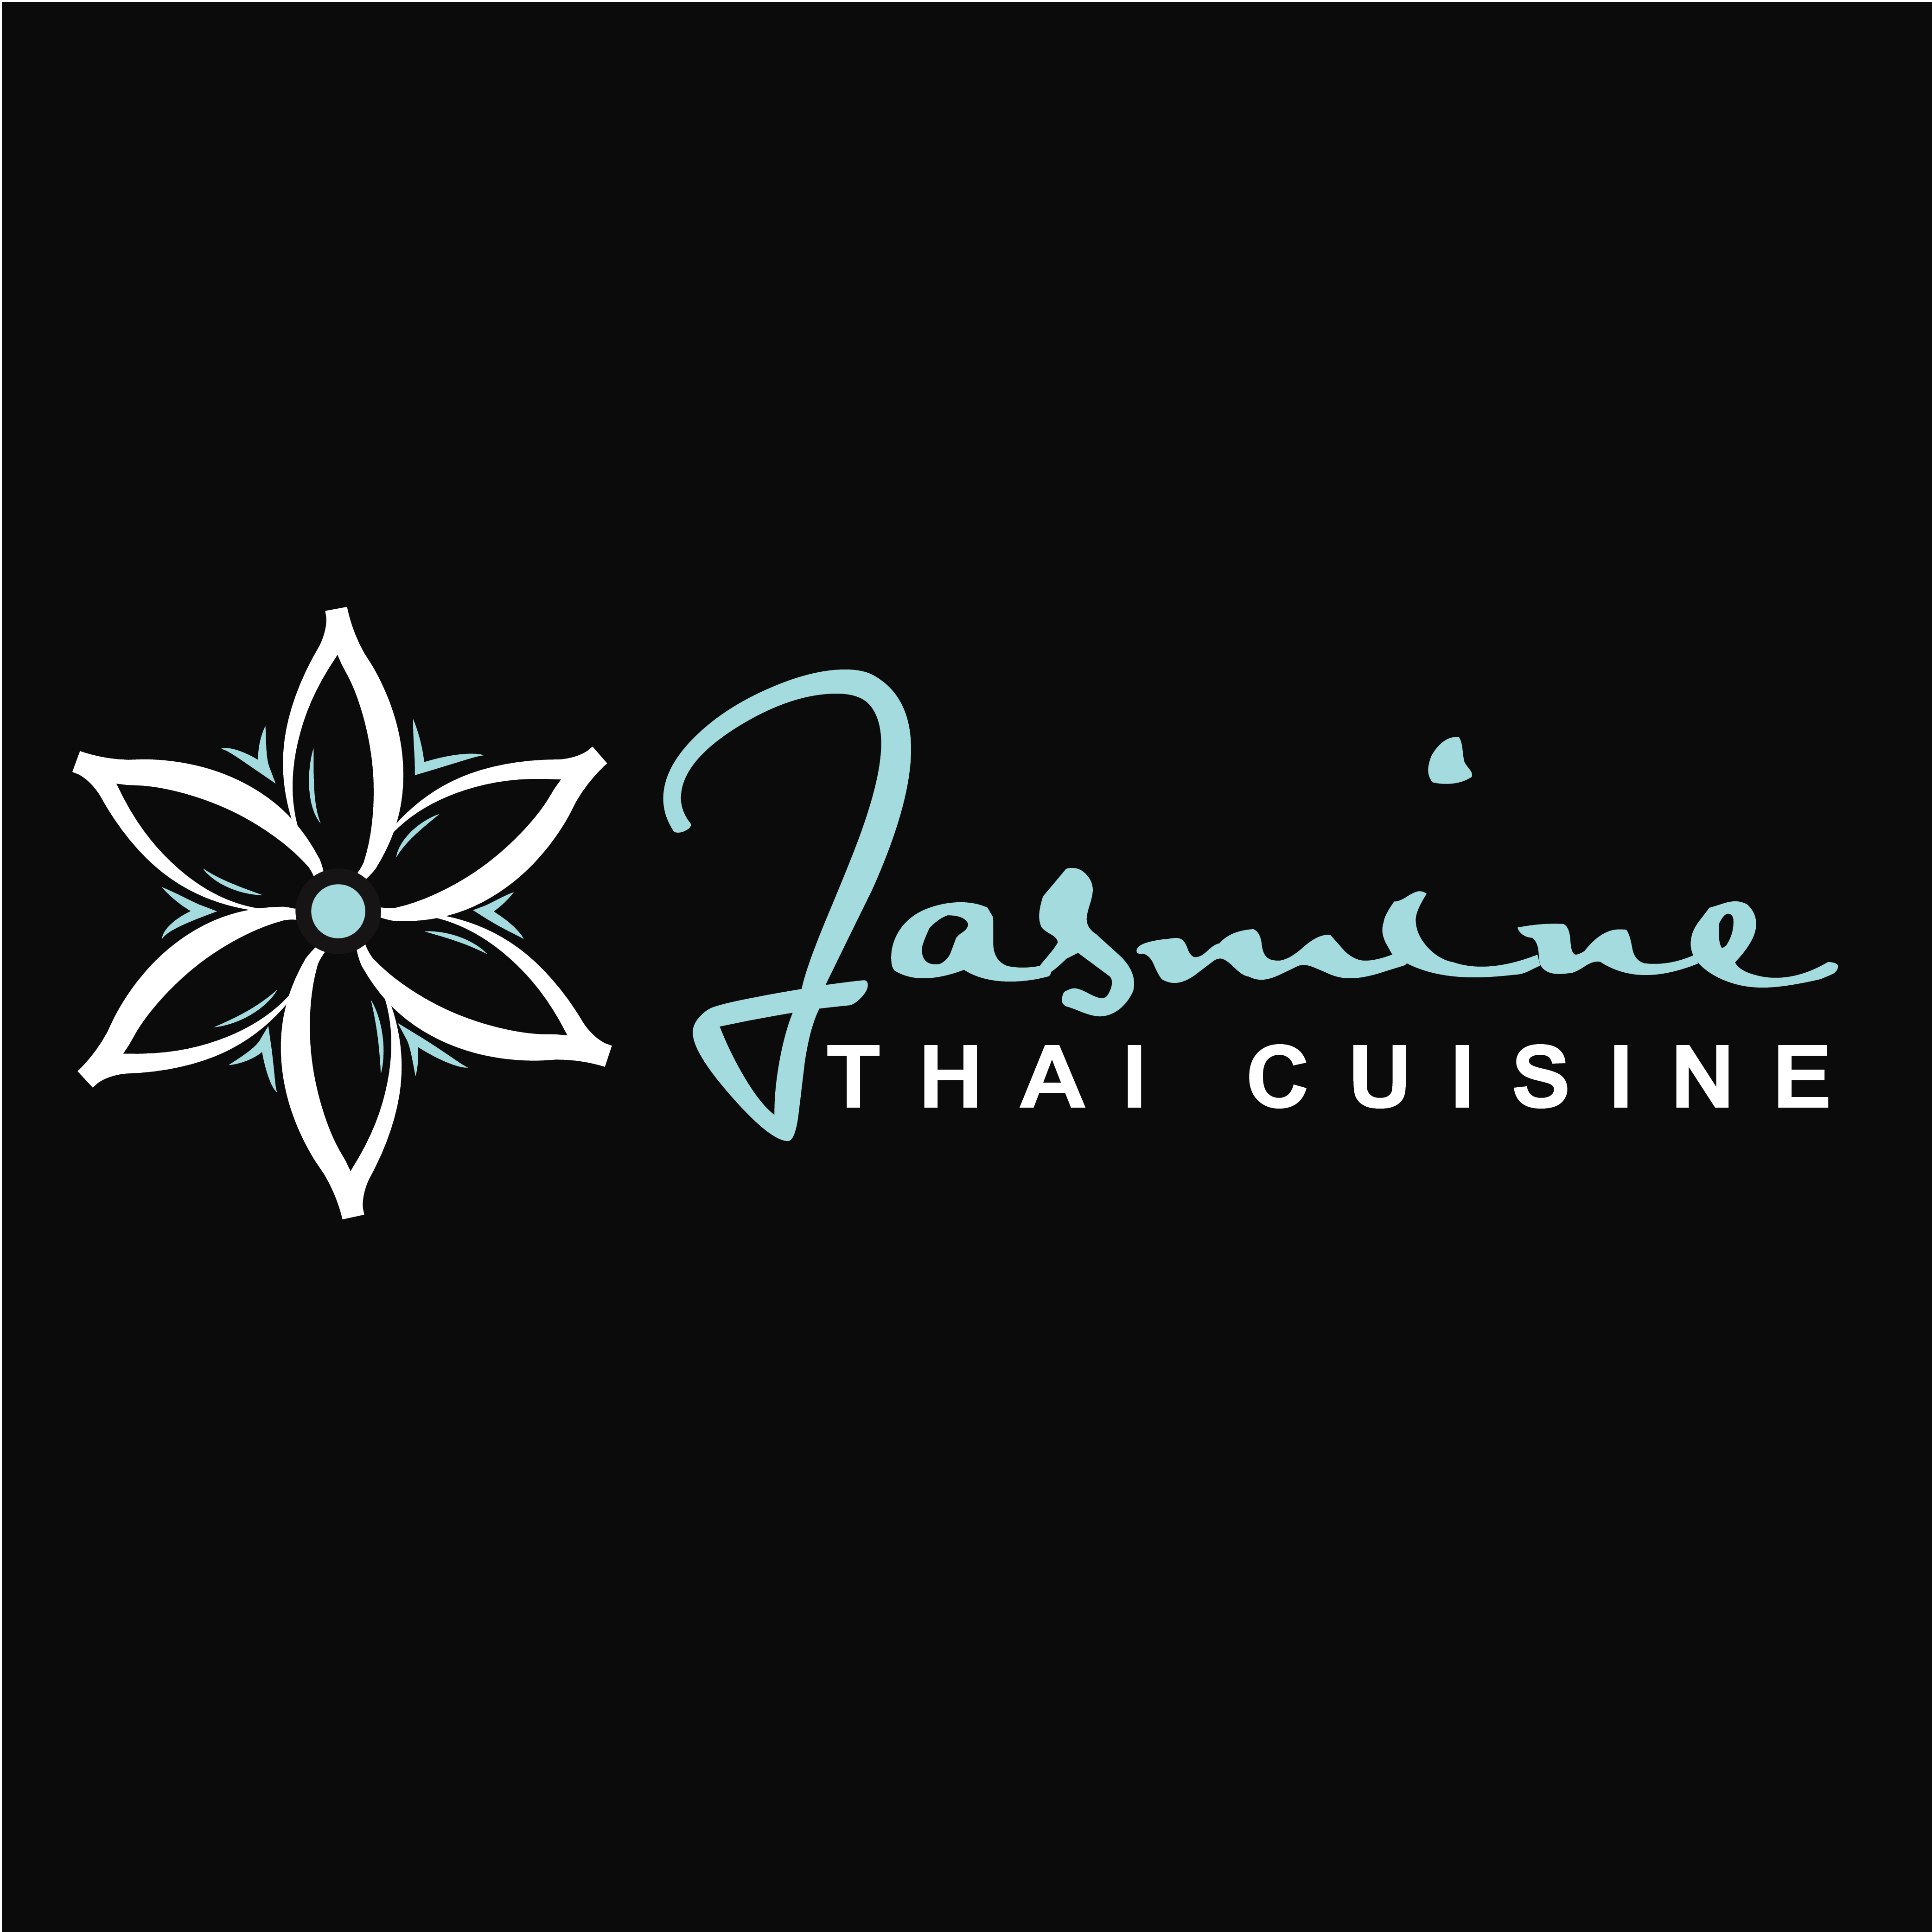 Winning Entry #89 for Logo Design contest - Jasmine Thai cuisine - original